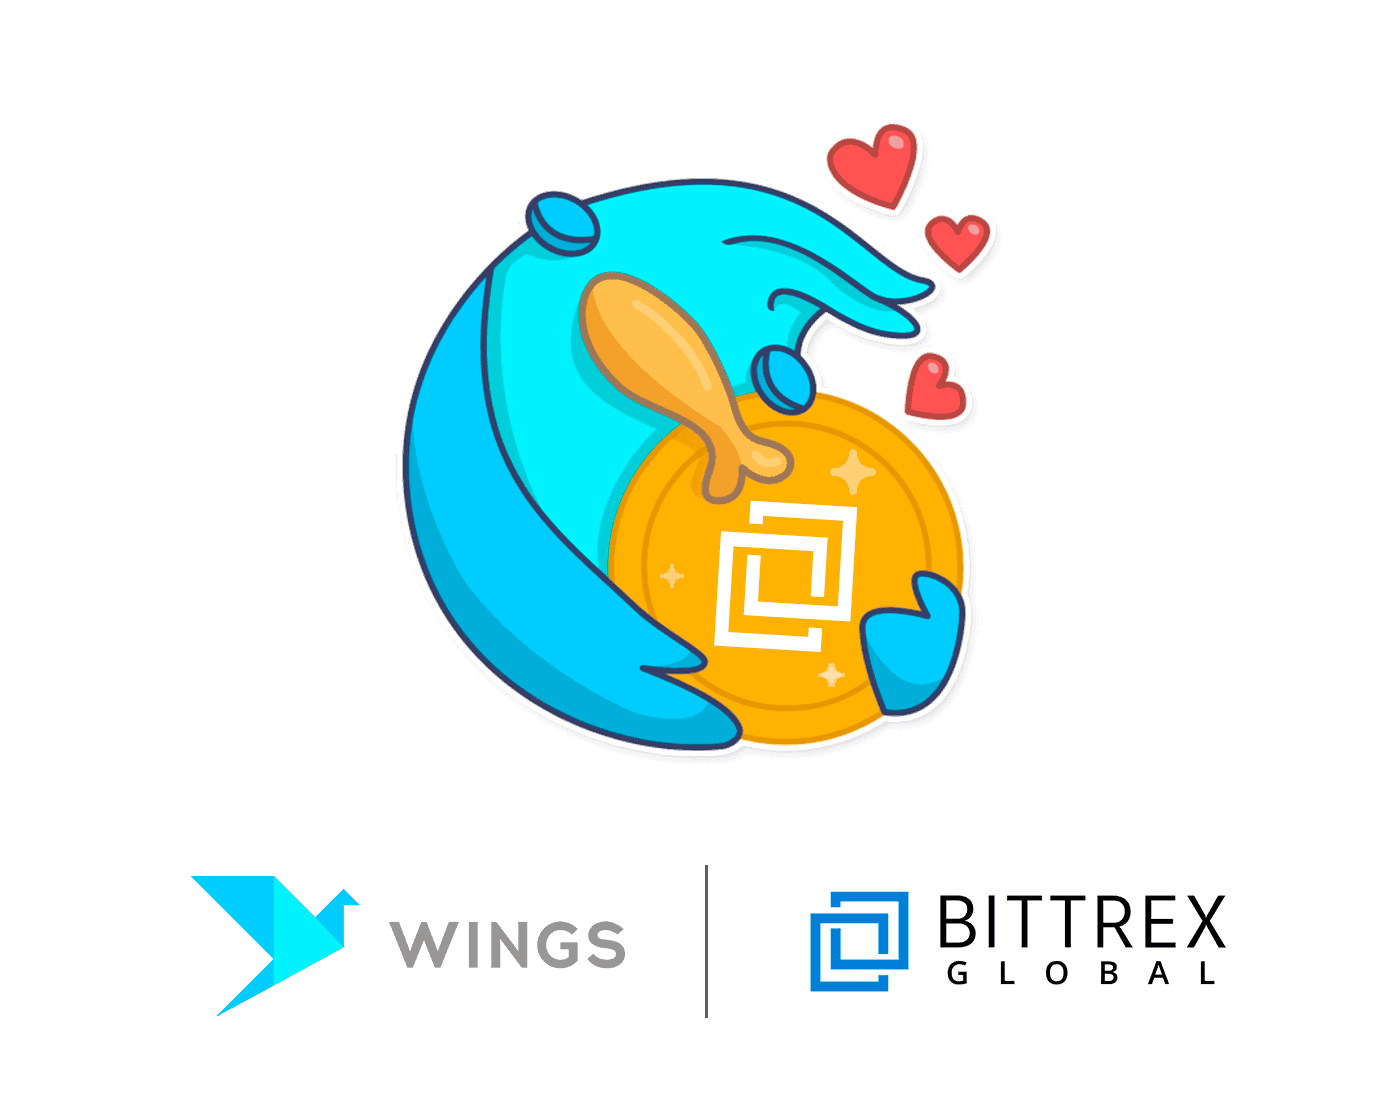 bittrex_wings-min